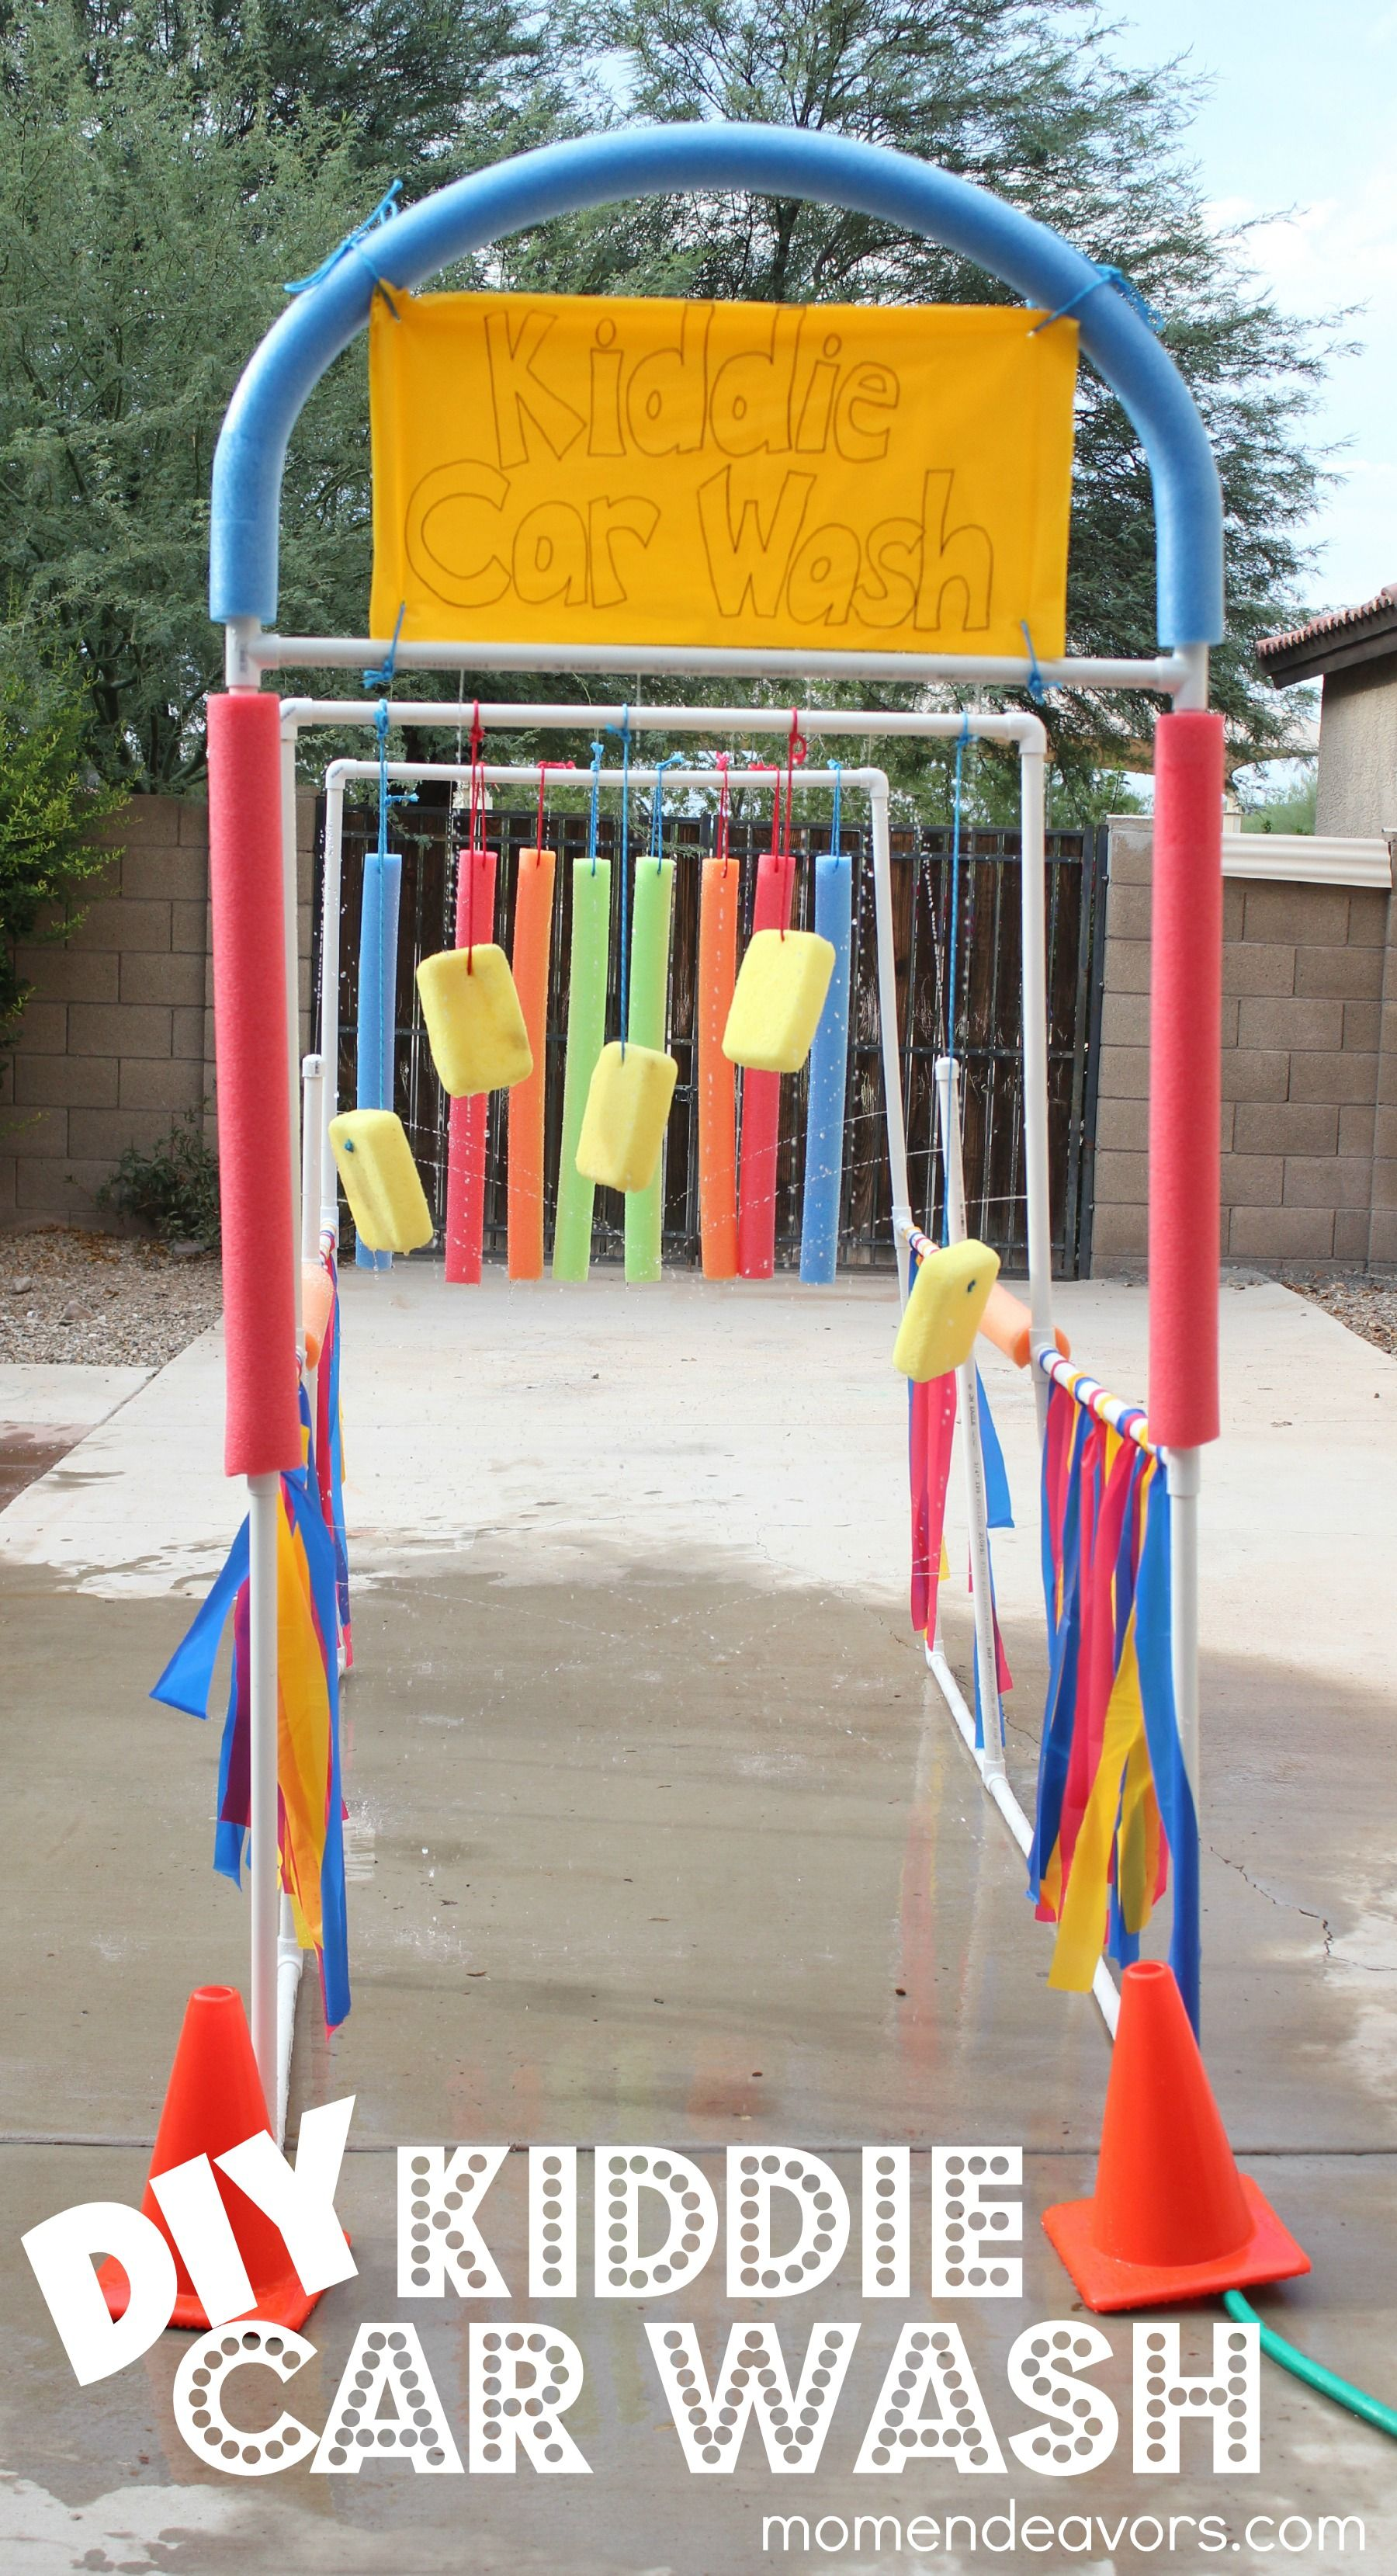 Diy kiddie car wash pinterest car wash sprinkler and cars make a kiddie car wash sprinkler lowescreator diy solutioingenieria Image collections